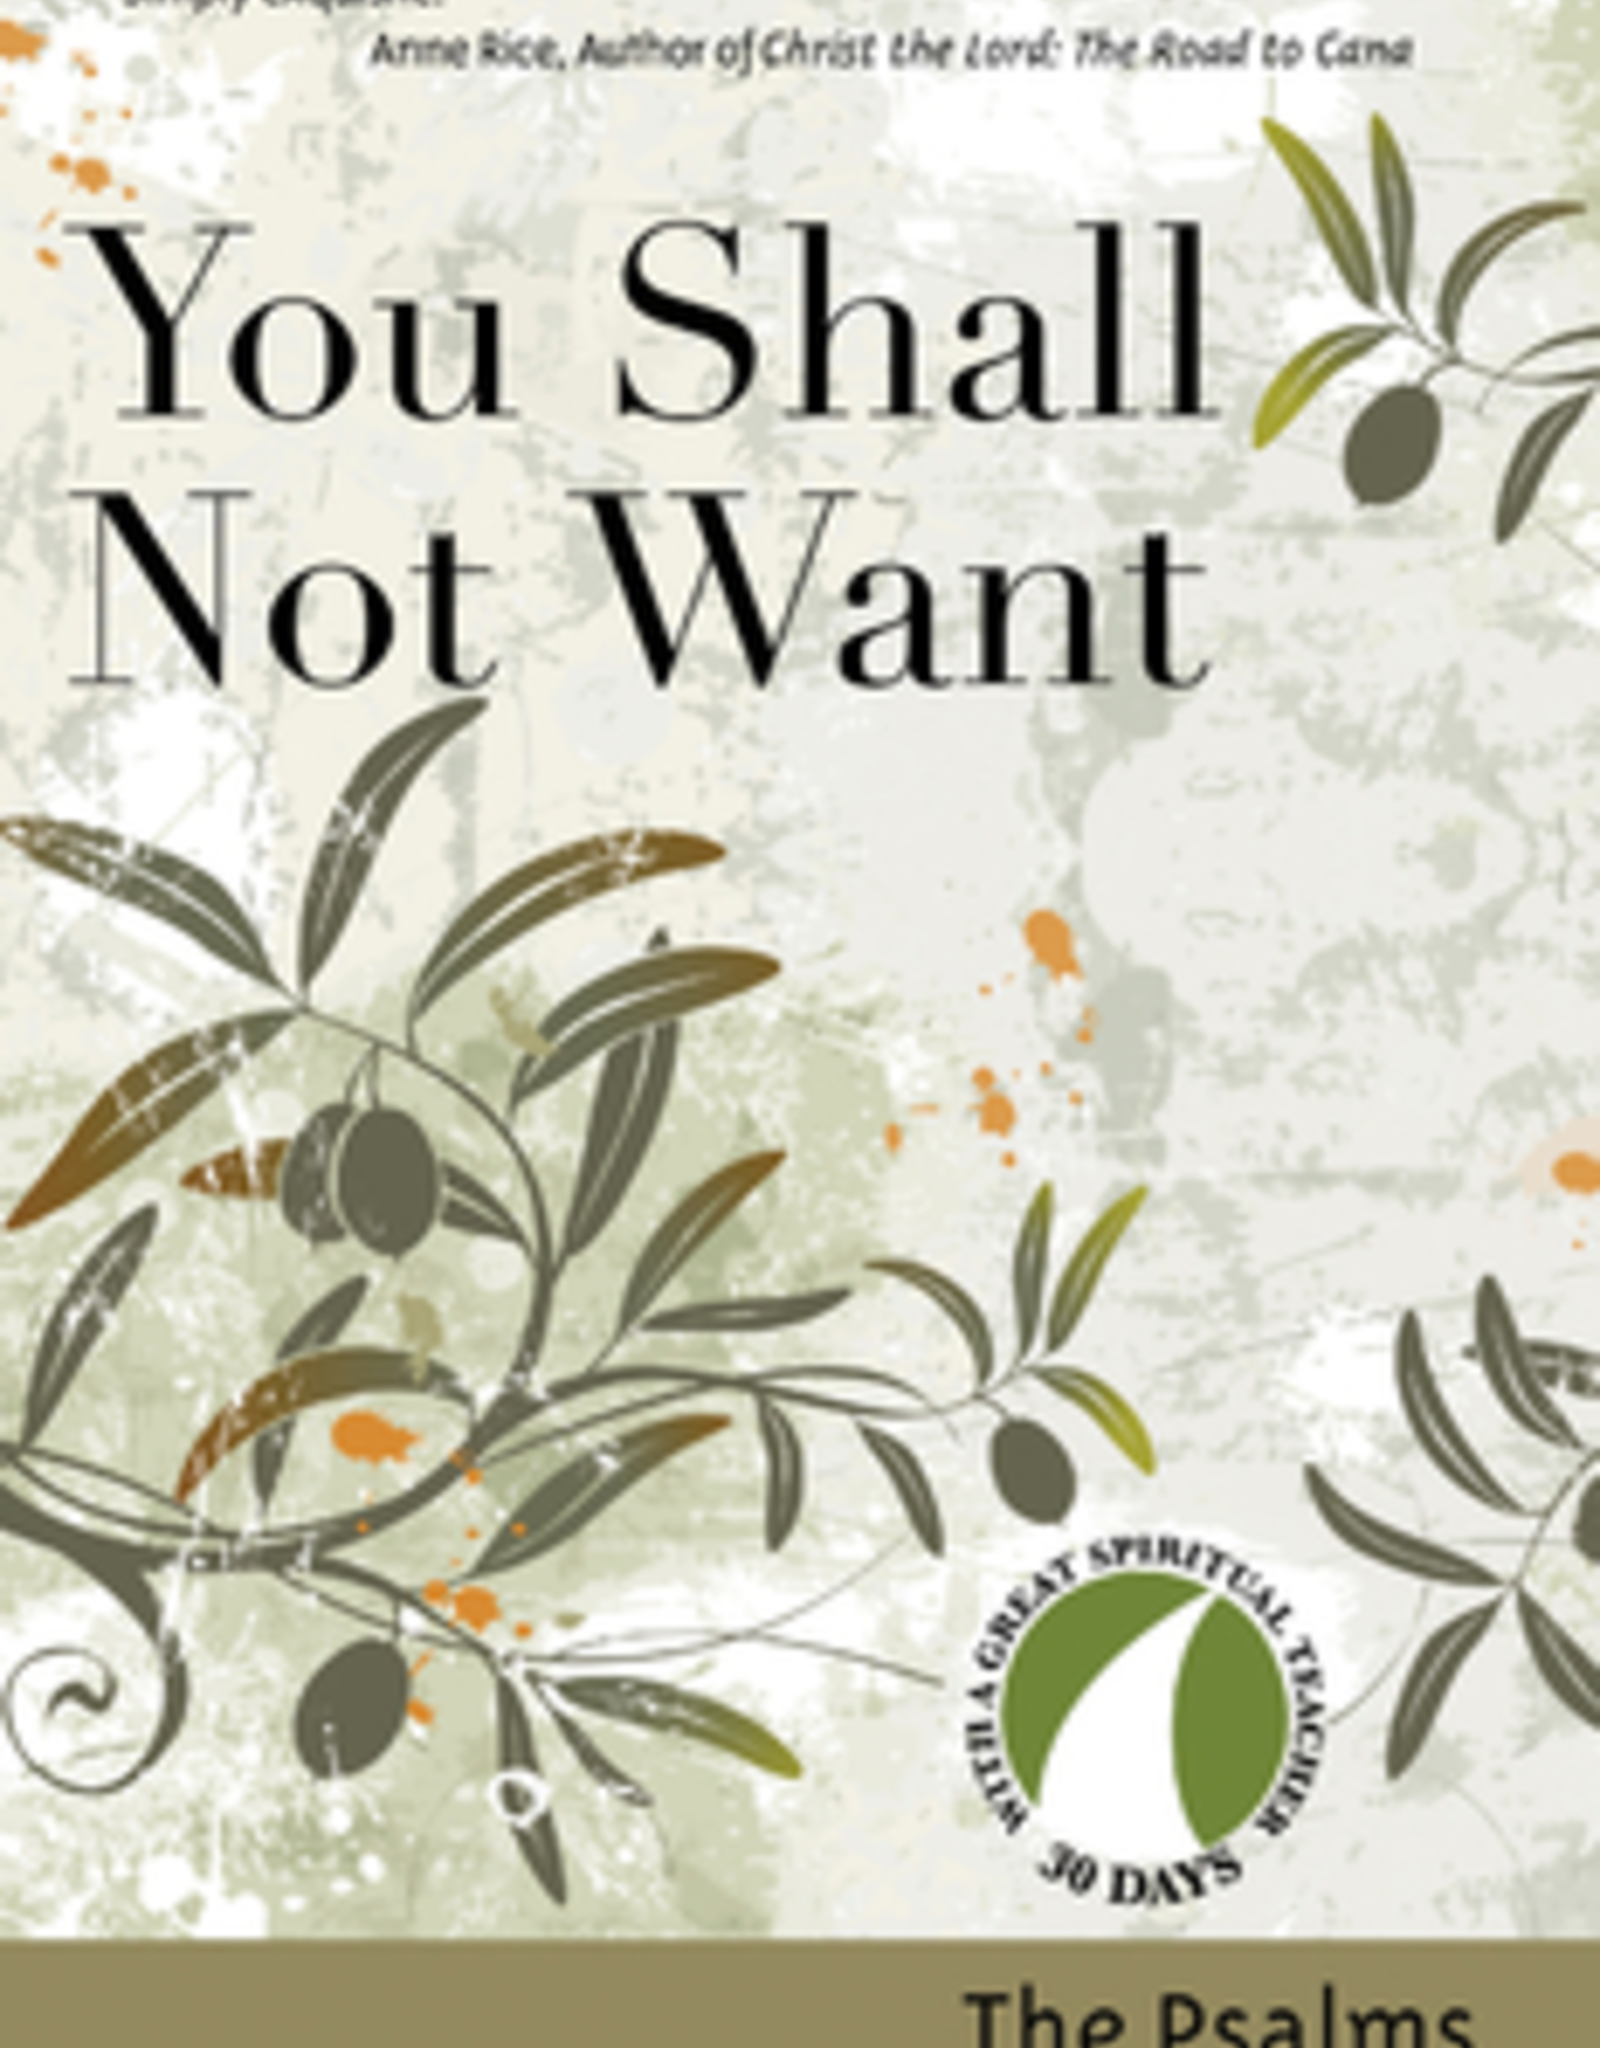 Ave Maria Press You Shall Not Want, by the Author of the Psalms, edited by John Kirvan and Richard Chilson, CSP (paperback)